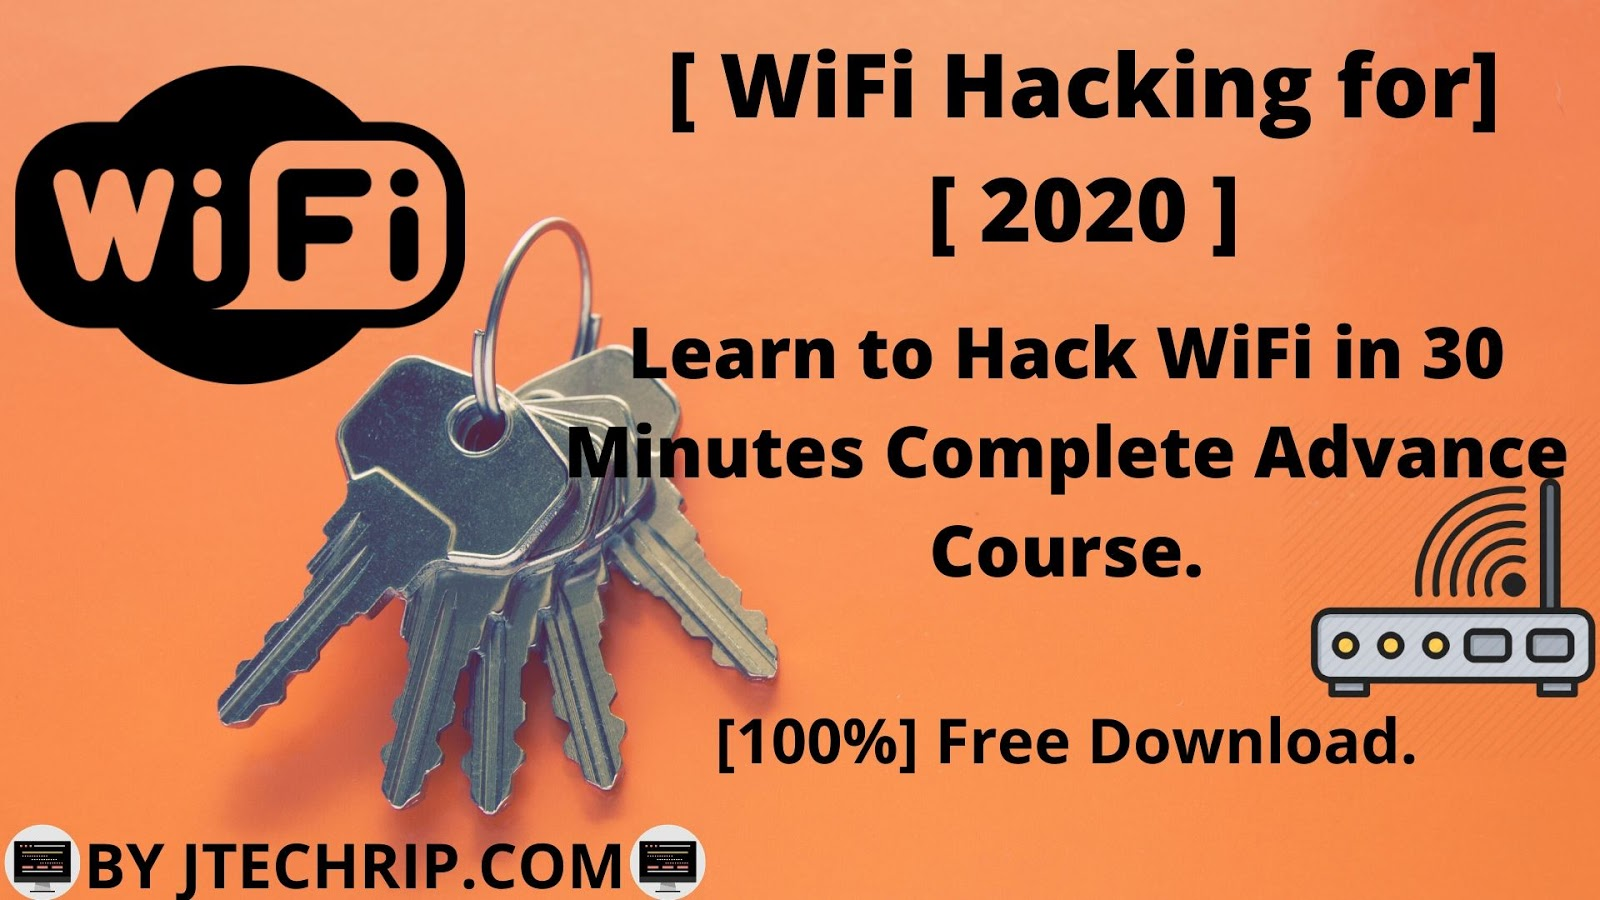 WiFi Hacking for 2020 : Learn to Hack WiFi in 30 Minutes.